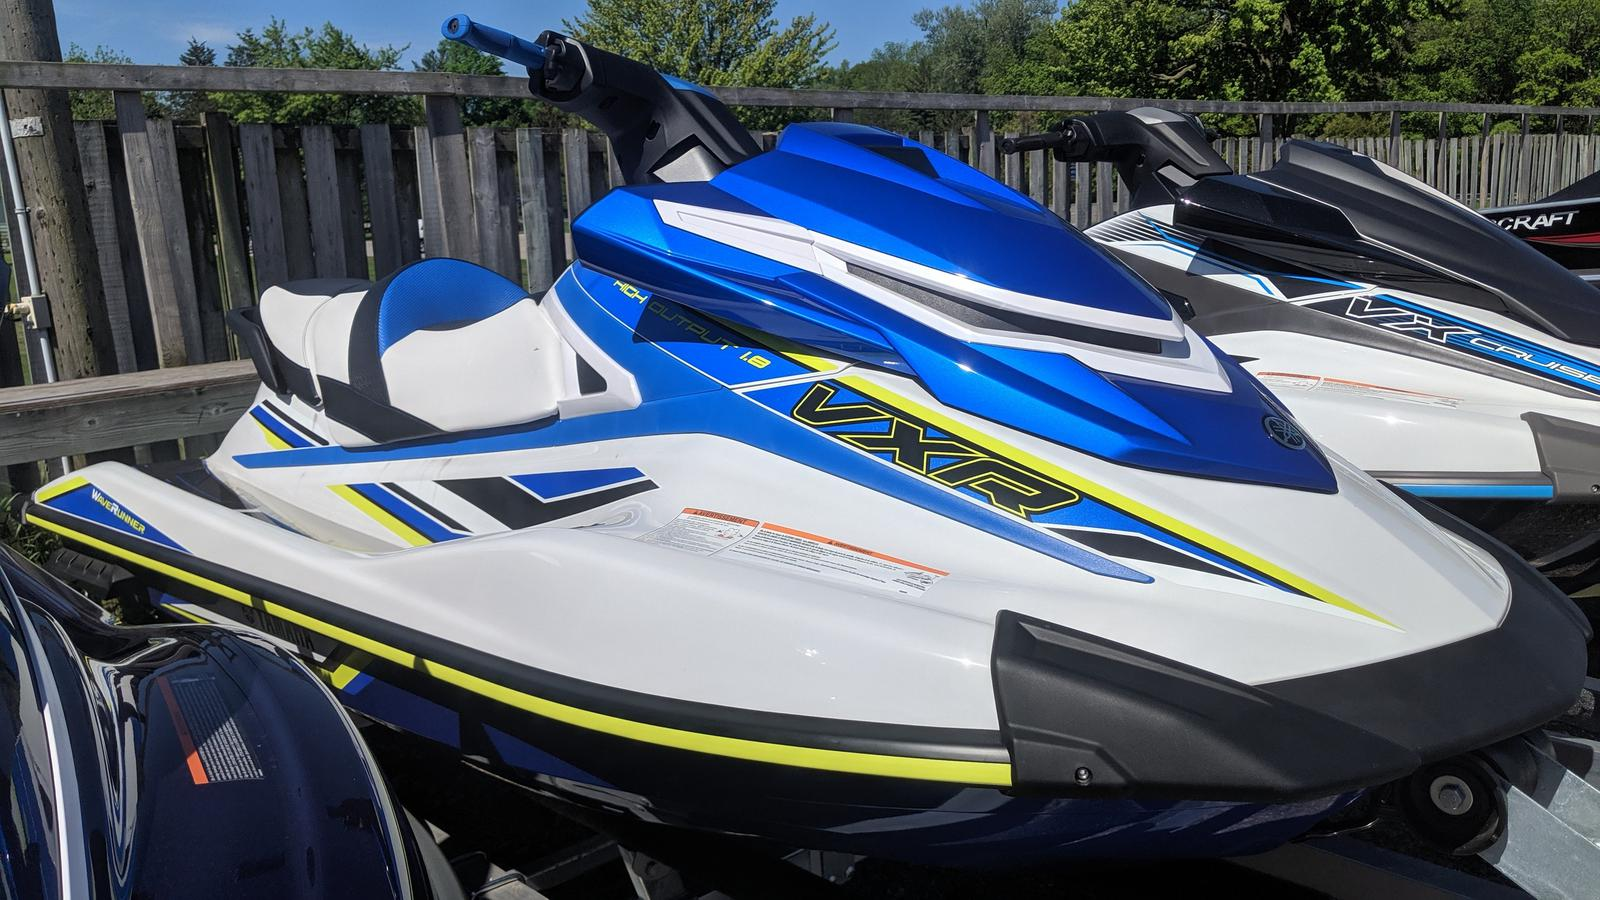 Inventory from Crestliner and Yamaha Southwest Marine Services Grand